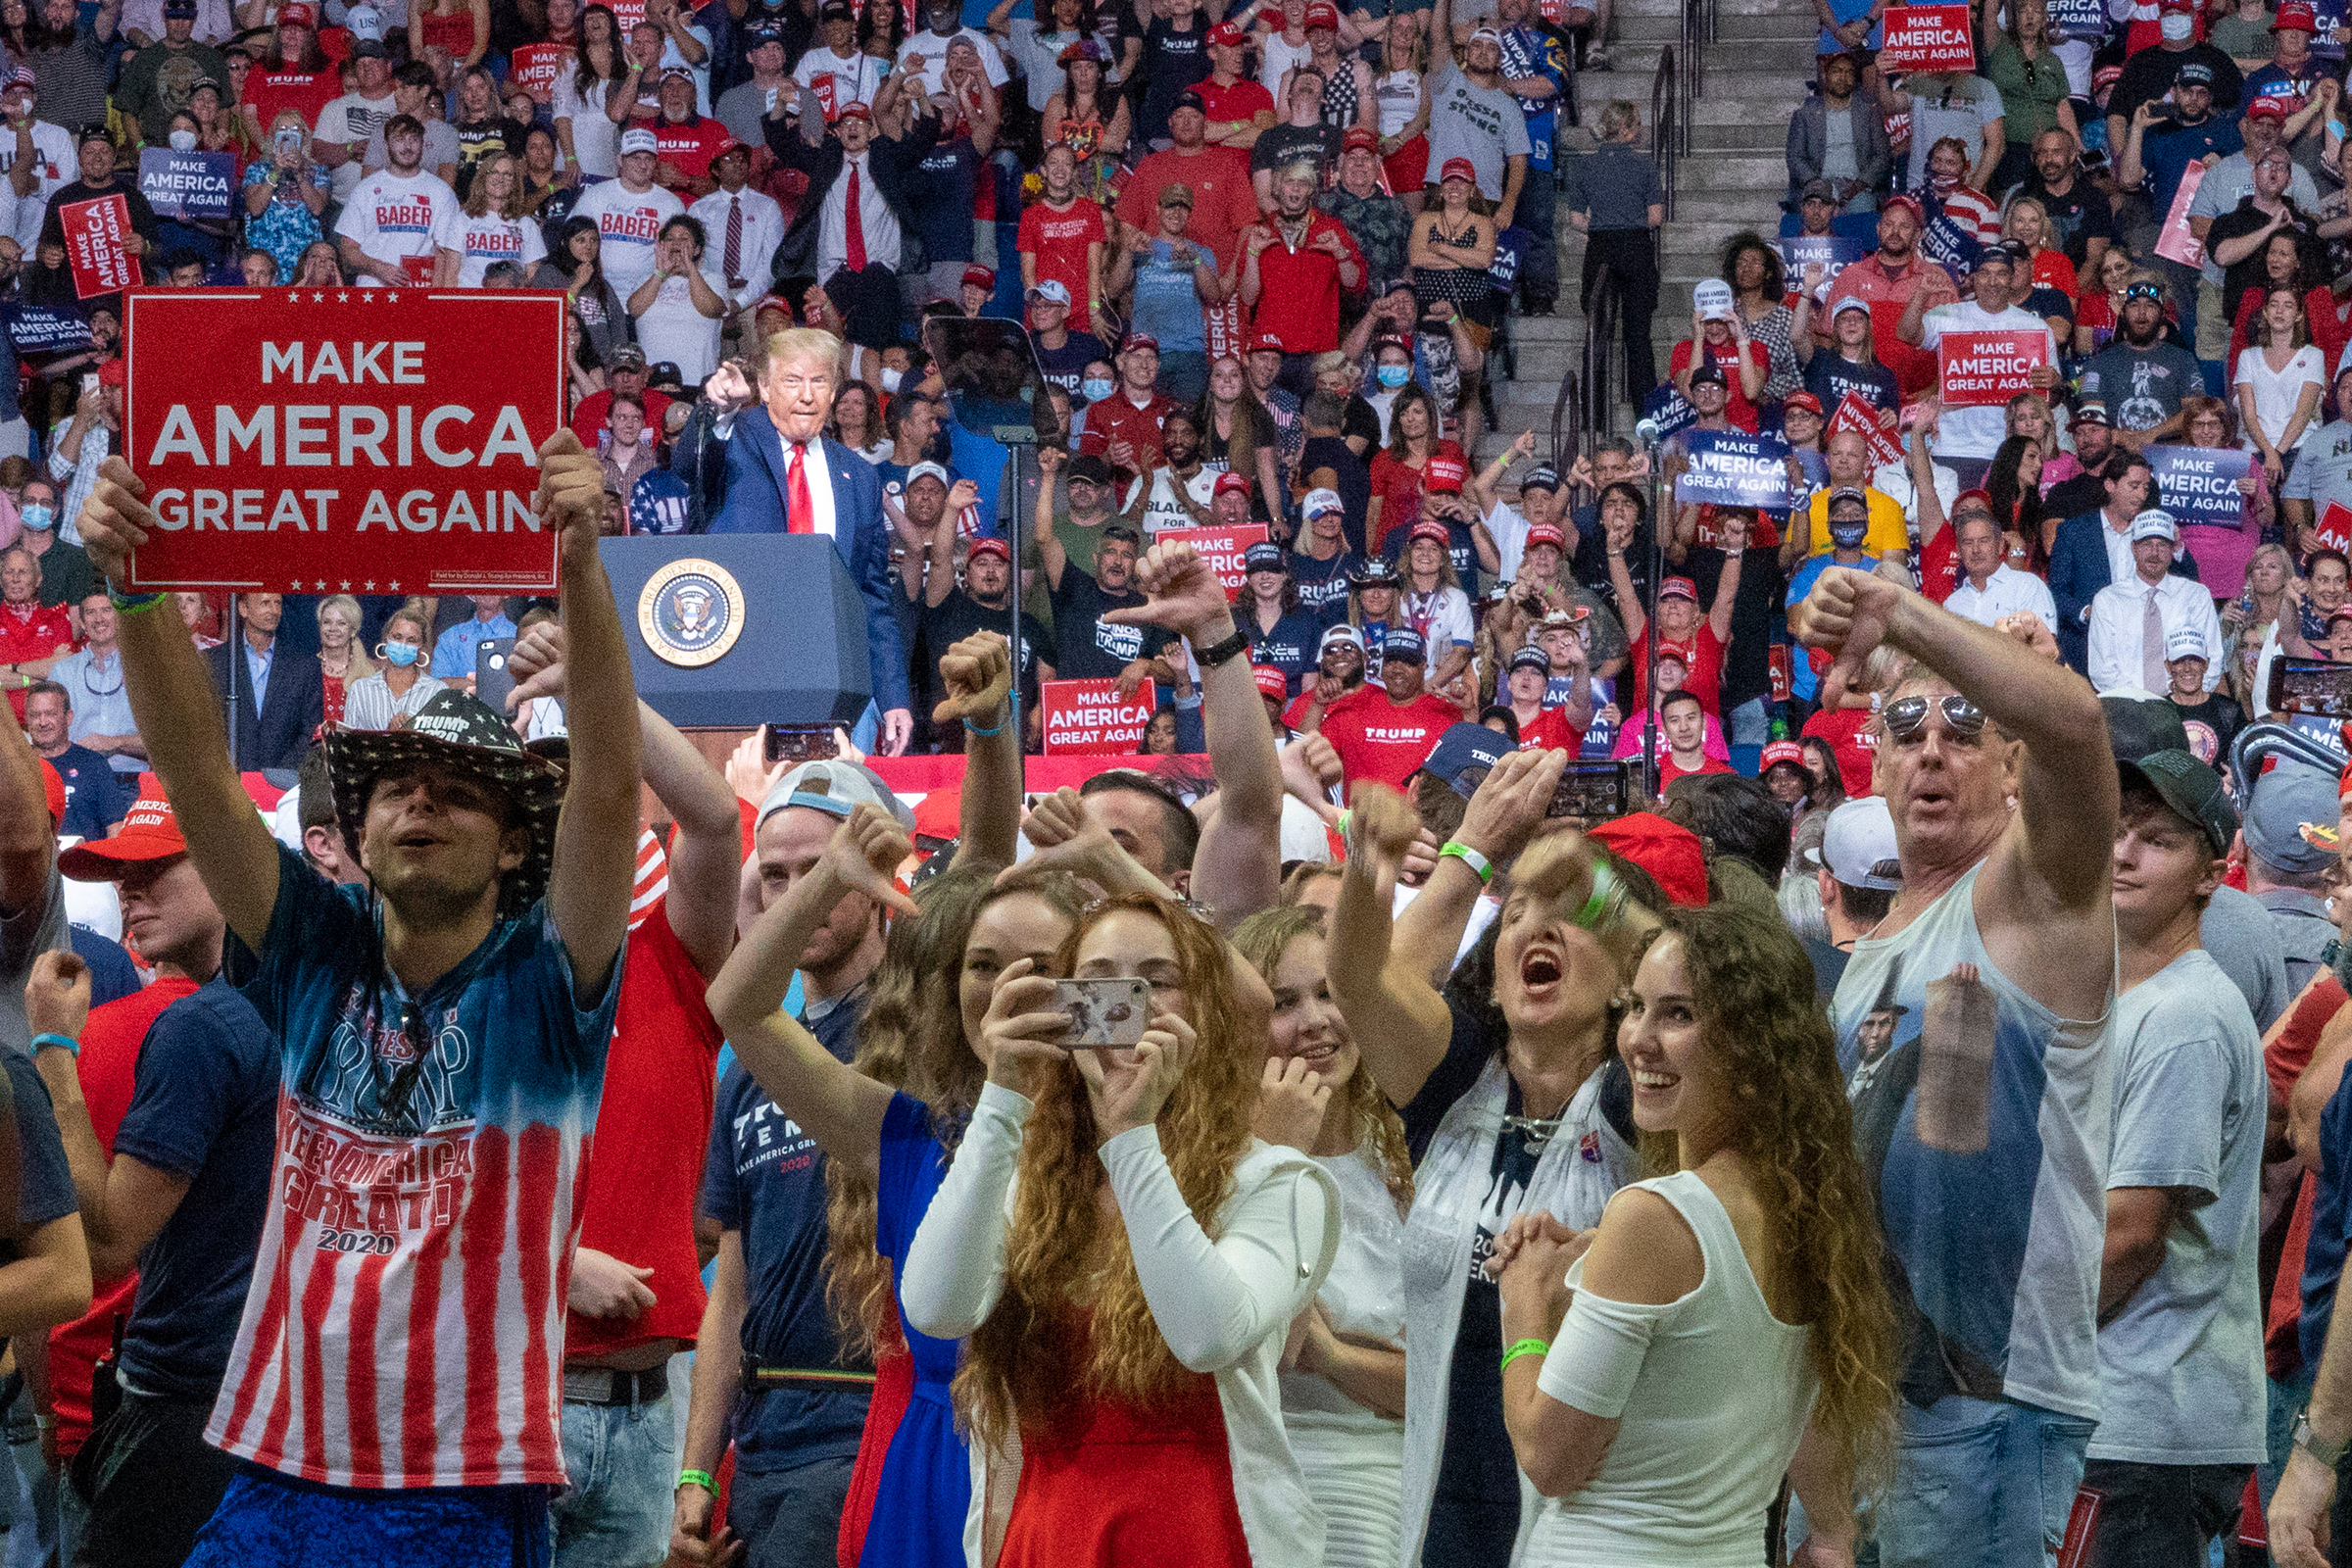 President Donald Trump stokes the crowd into booing the media during a campaign rally at the BOK Center in Tulsa, Okla., on June 20, 2020.